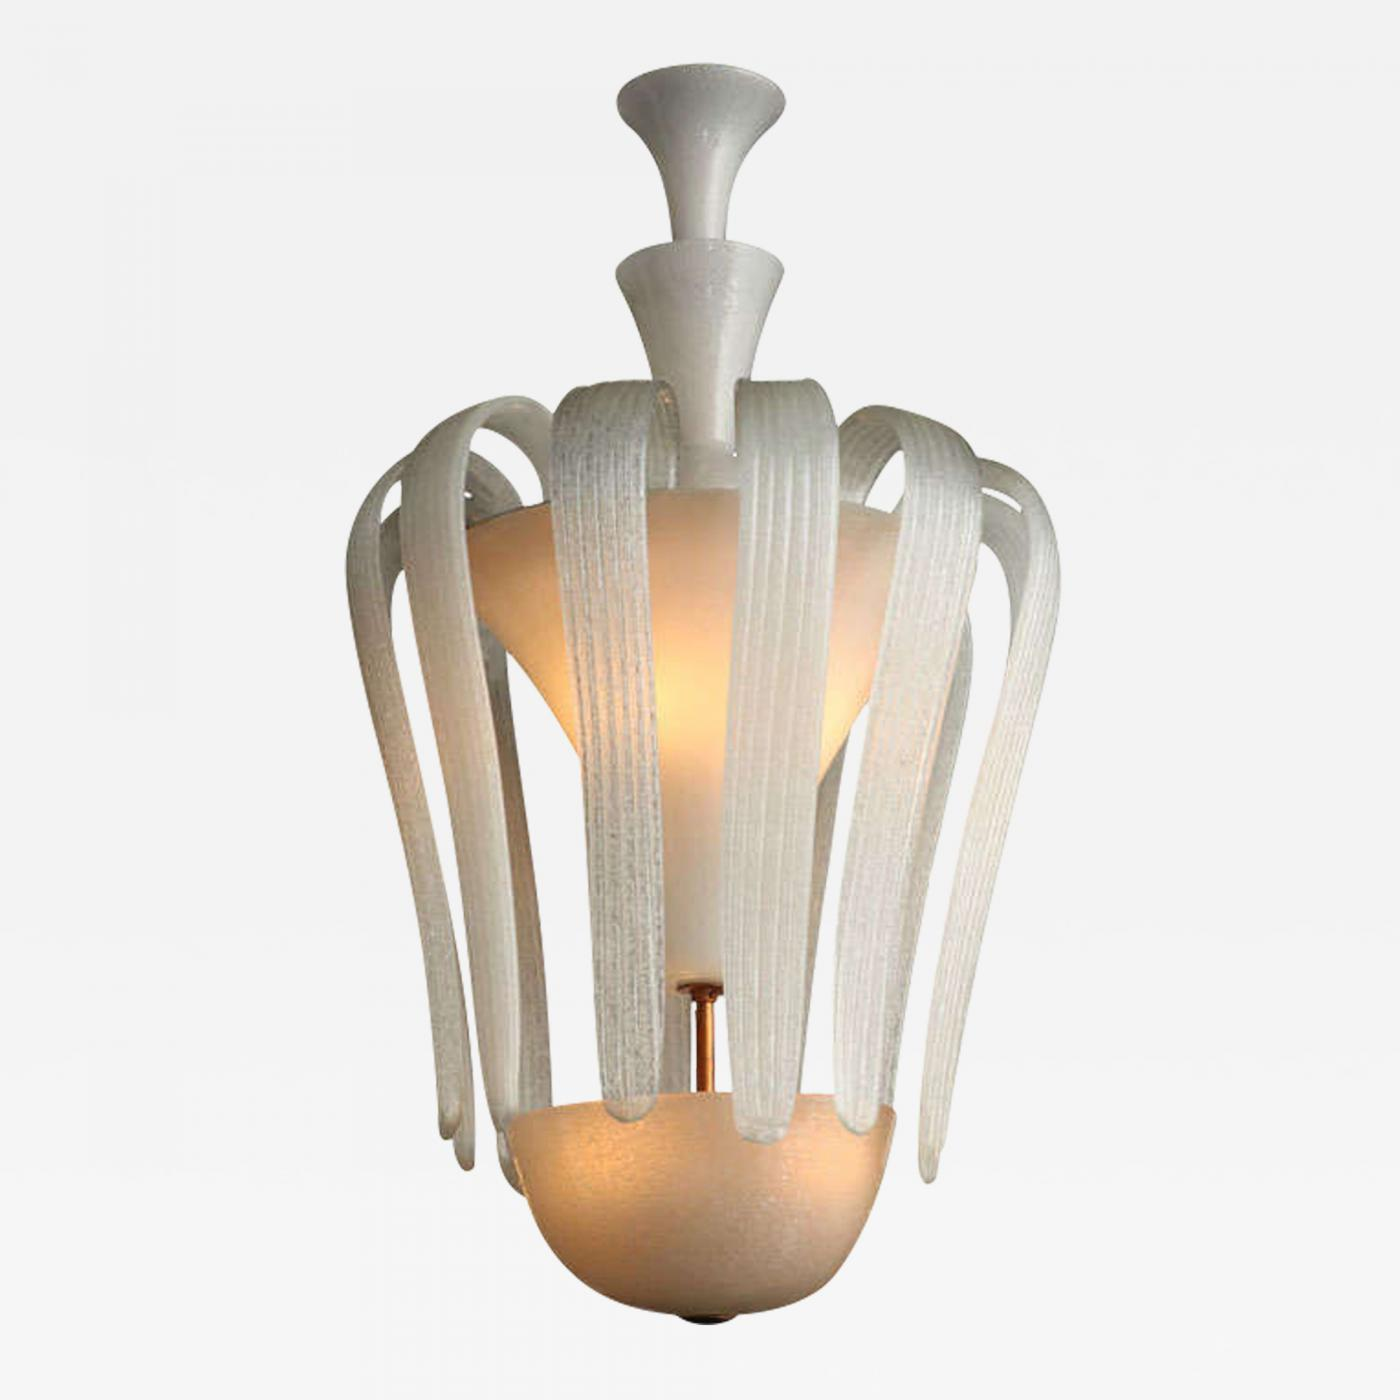 Venini venini chandelier made in venice in 1931 listings furniture lighting chandeliers and pendants aloadofball Images